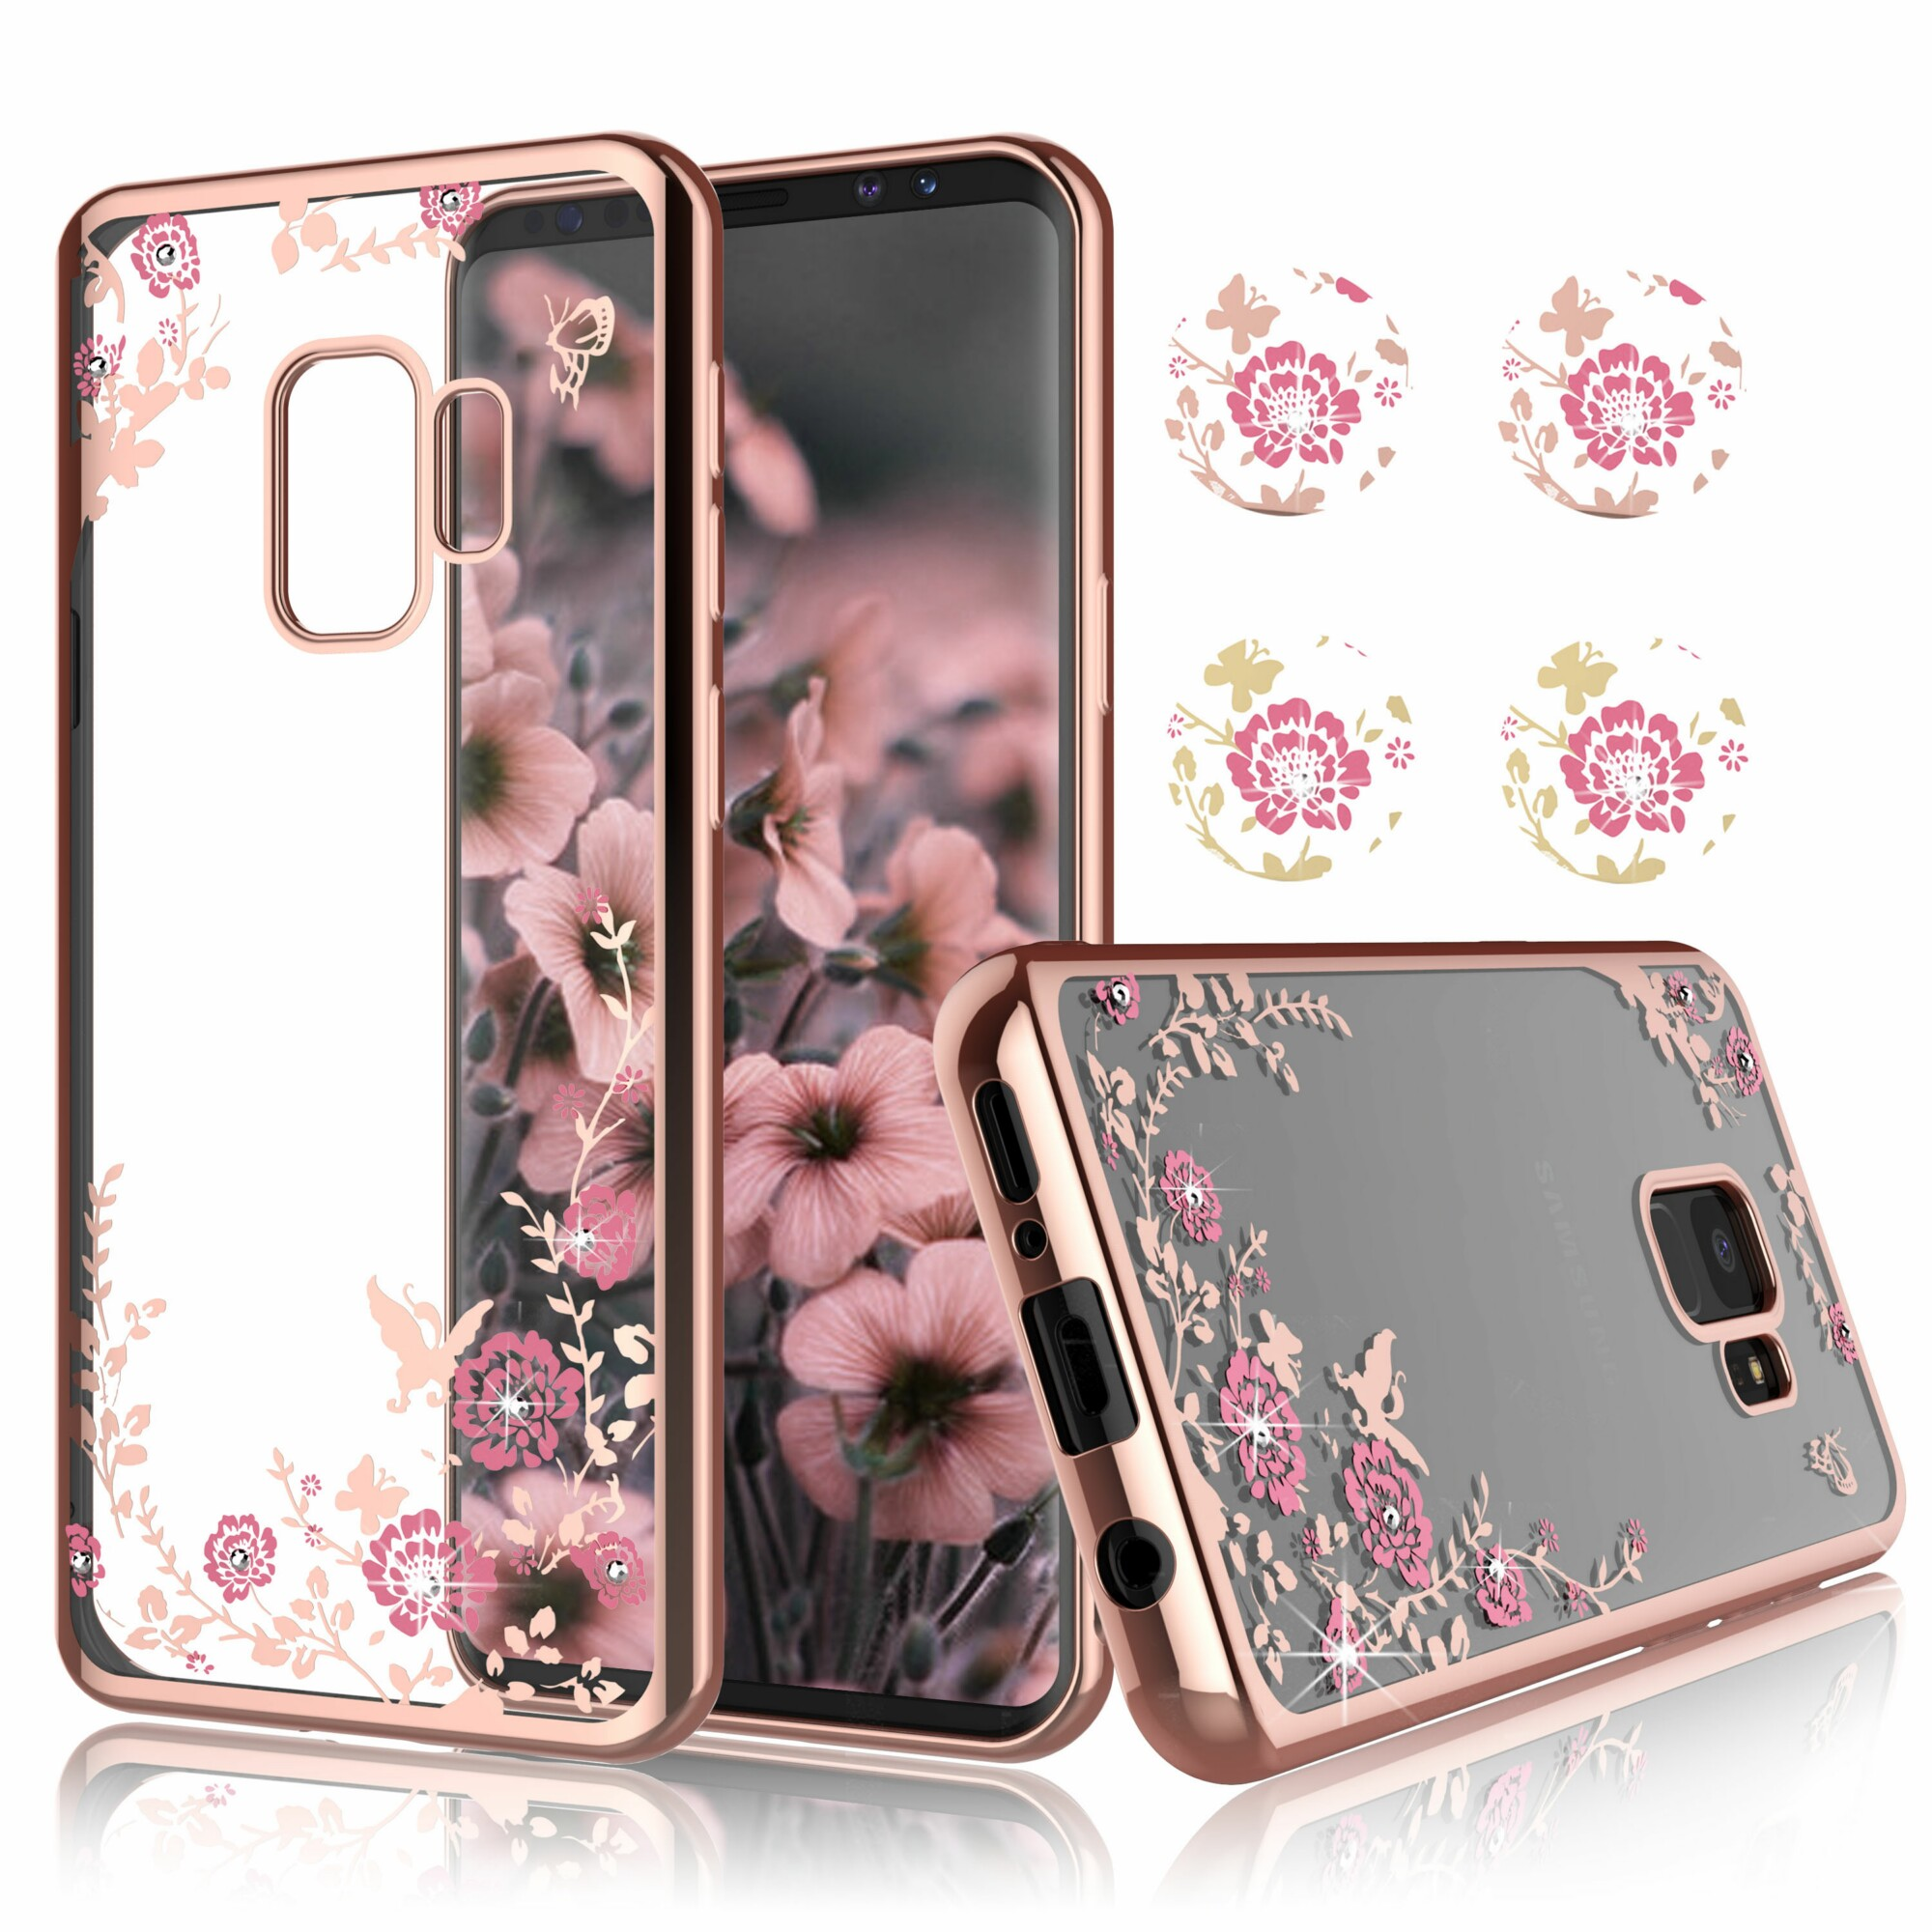 Galaxy S9 Case, Samsung S9 Clear Case Cover, Njjex Ultra Thin TPU Case With Bling Diamond Cover For Samsung Galaxy S9 Released on 2018 -Rose Gold